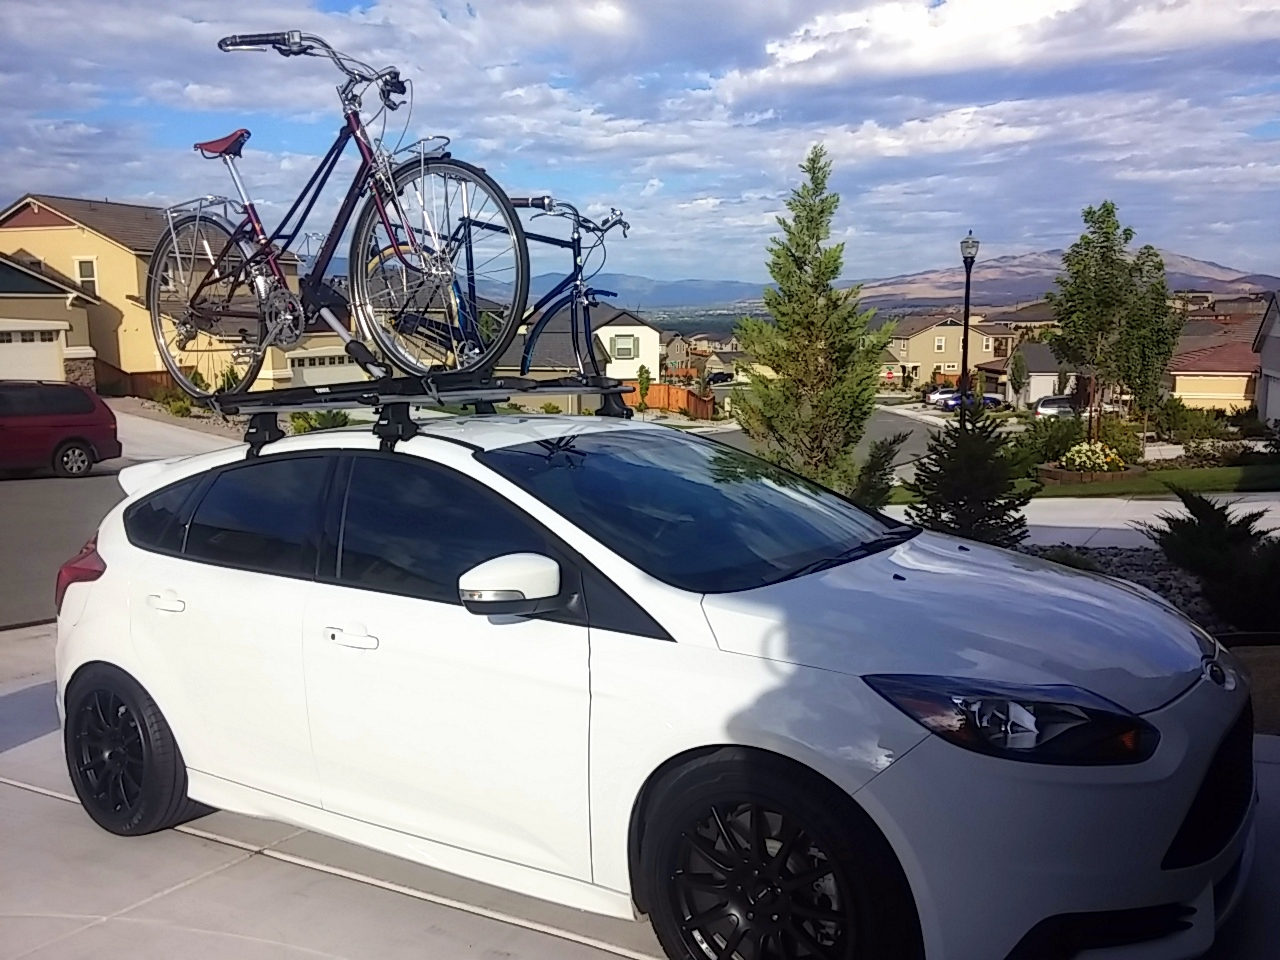 Ready for a bicycle adventure trip with our commuter bikes loaded on the roof of our car.